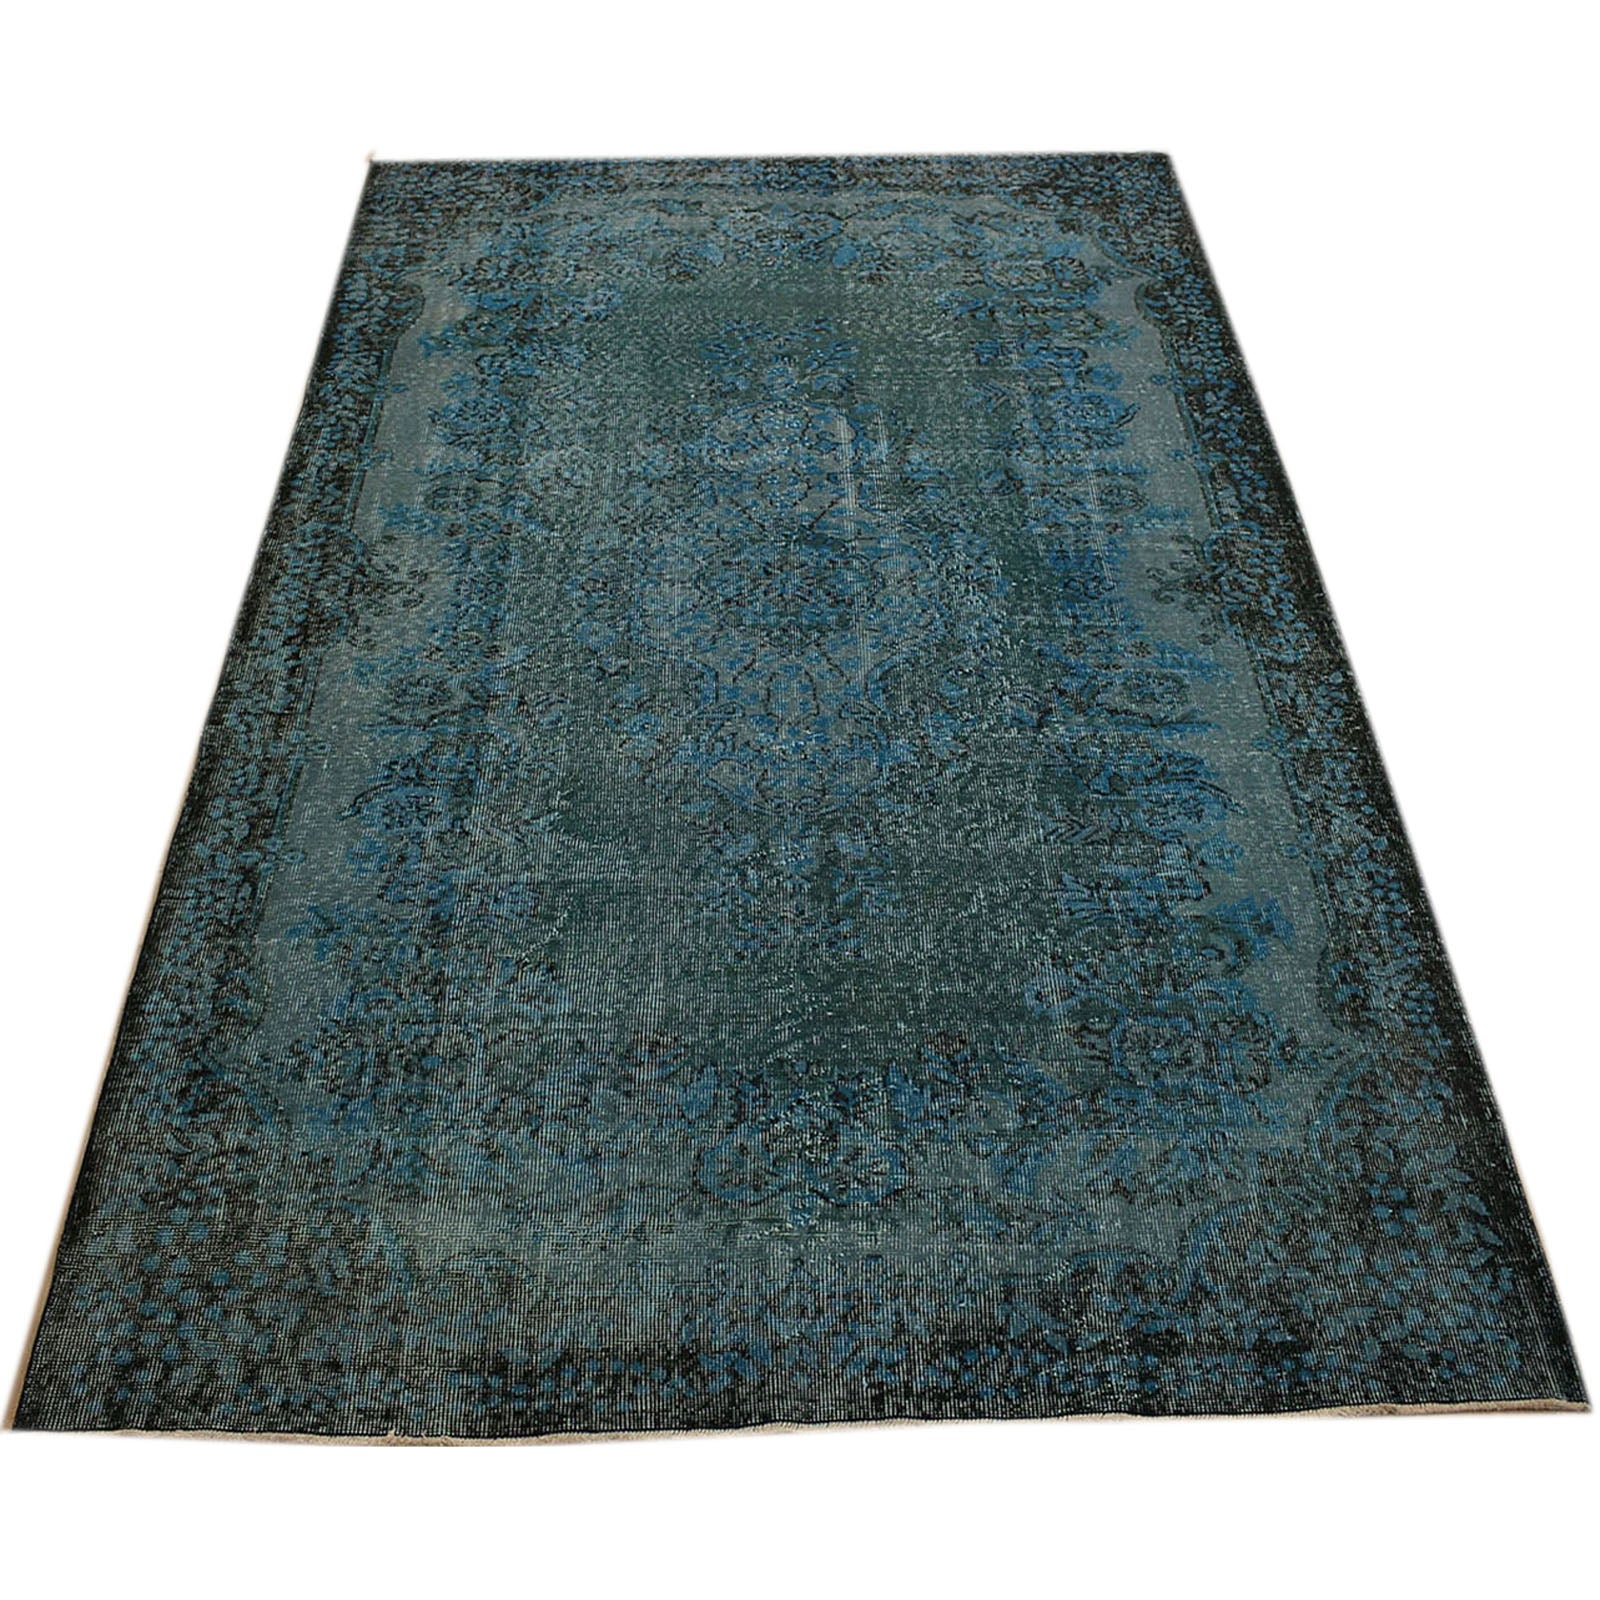 Hali 178X284 CM Bursa Handmade over dyed rug 2368